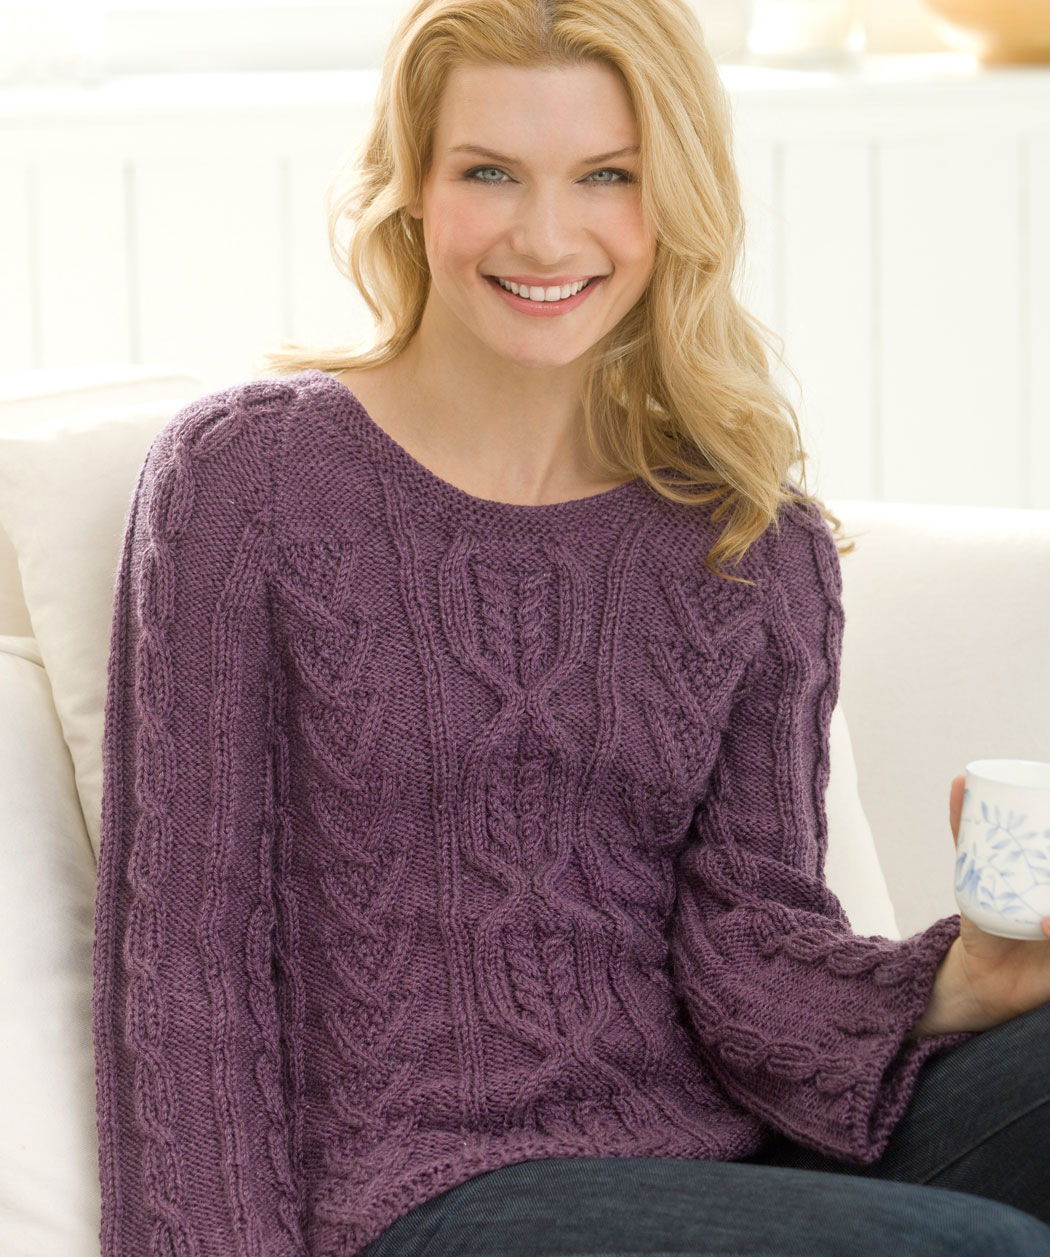 Sweater Knitting Patterns Free : Cable Knit Sweater Patterns A Knitting Blog